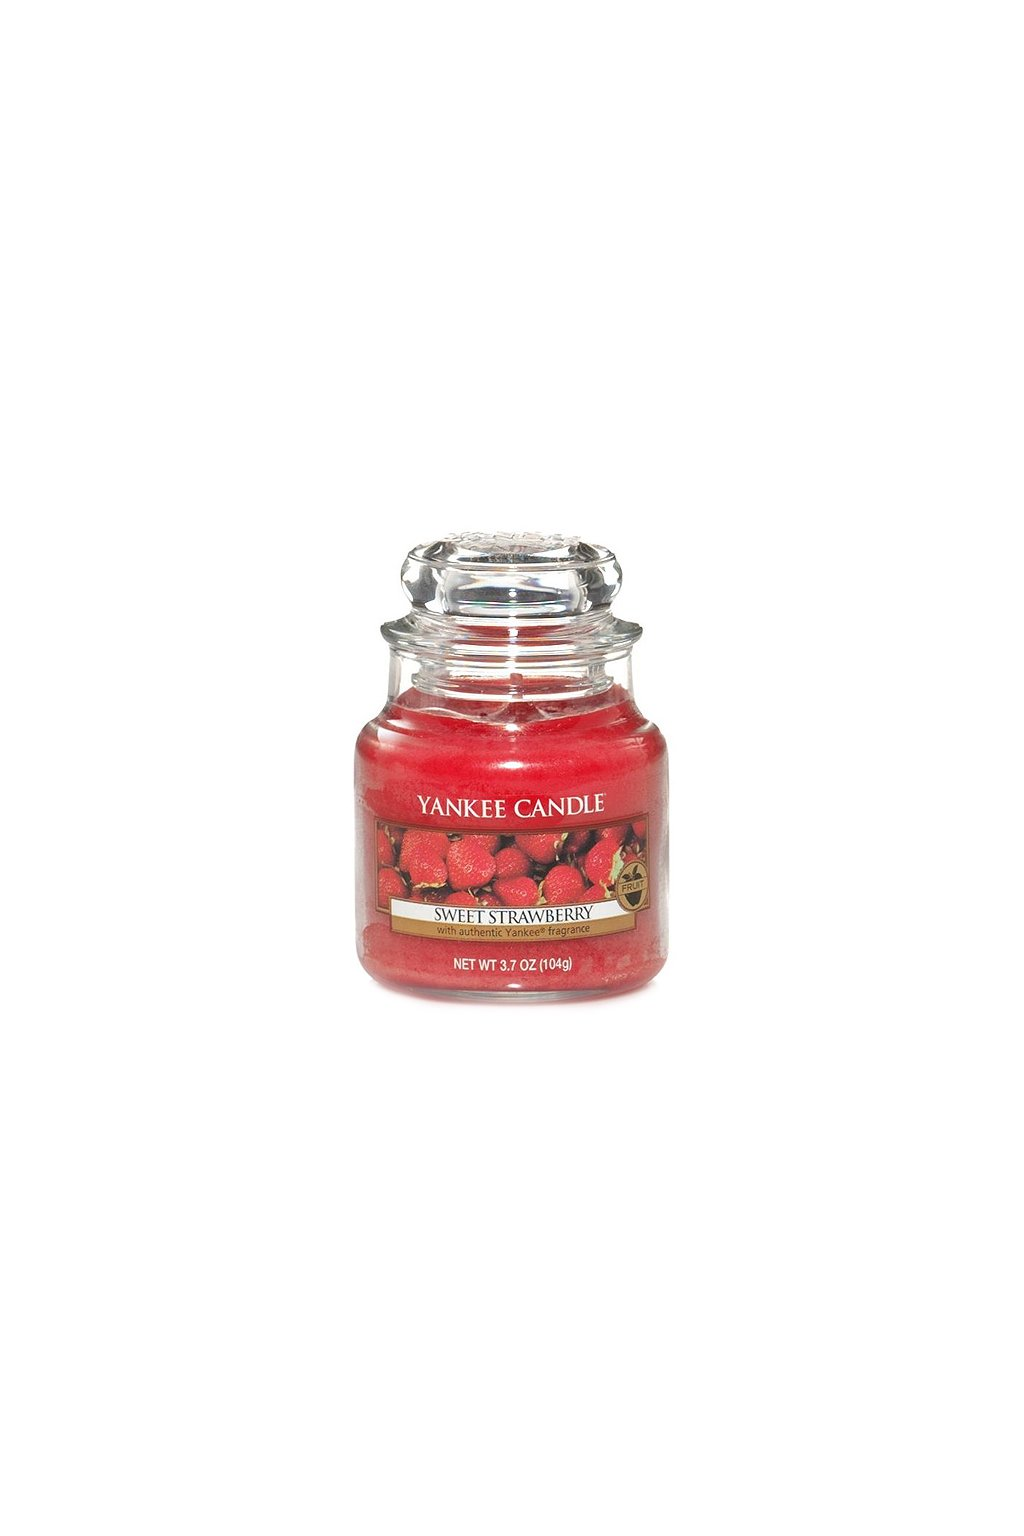 Yankee Candle Sweet Strawberry 104g